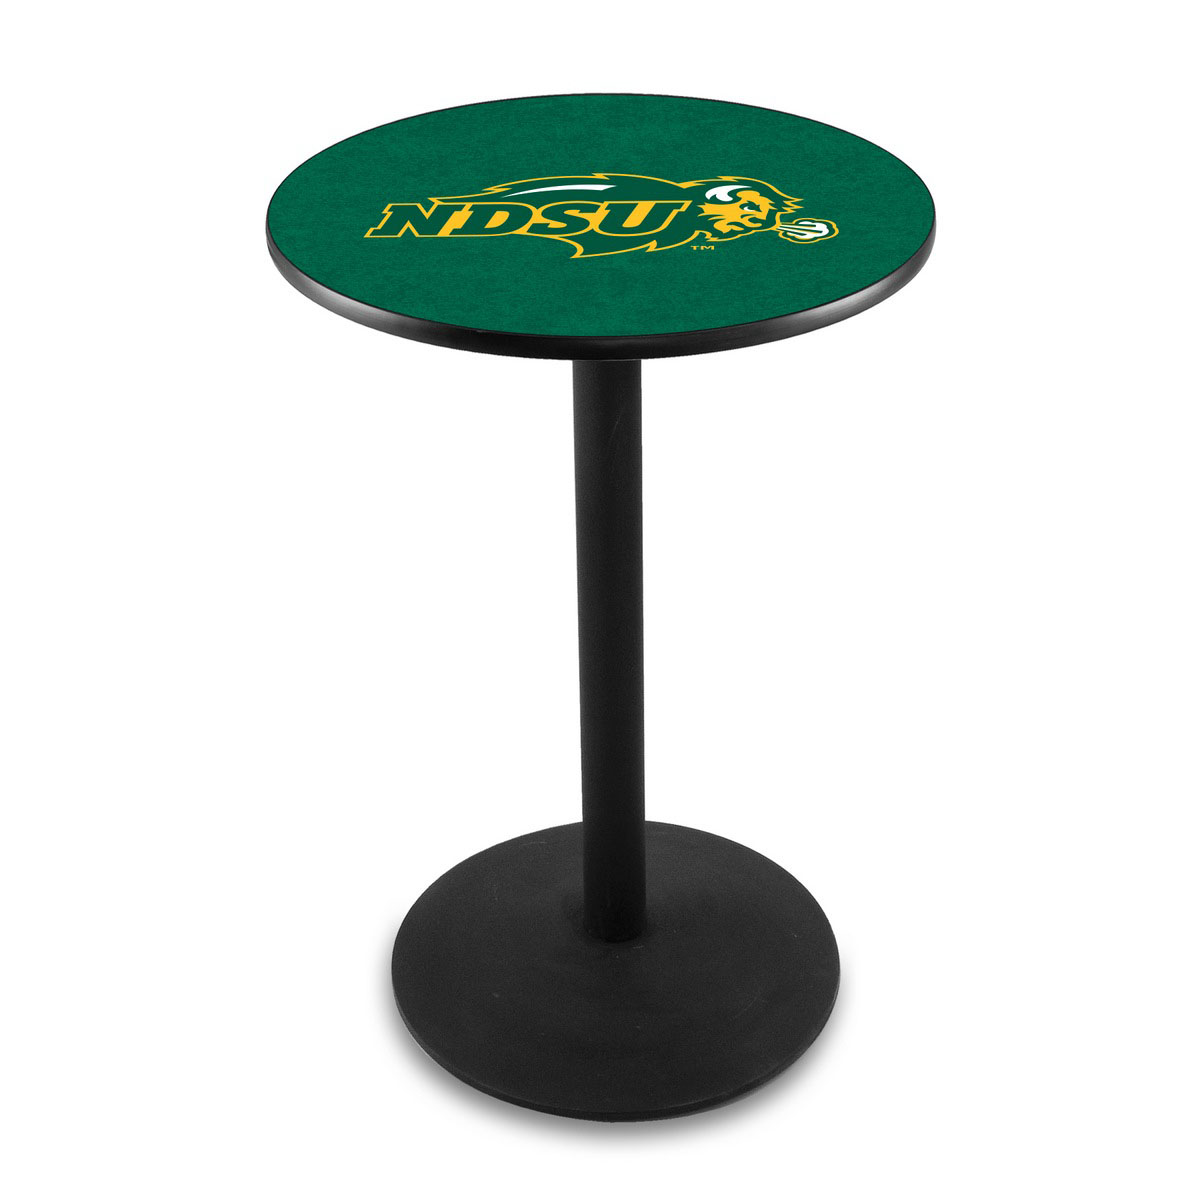 Buy North Dakota State University Gold Logo Pub Bar Table Round Stand Product Photo